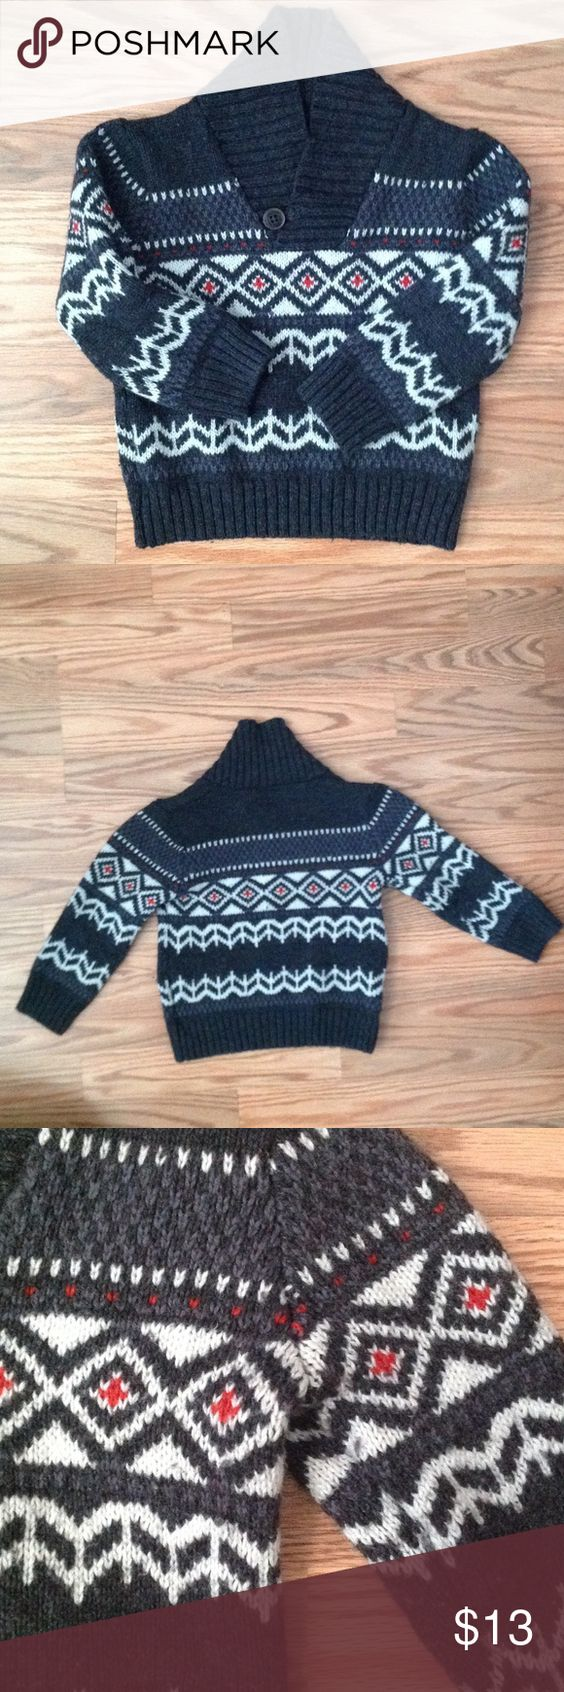 Fair Isle sweater 2T Toddler EUC Osh Kosh Fair Isle sweater with notch button collar. Excellent used condition. Dark grey with red and white accents. Perfect for the holidays. Size 2T. Slight pilling, but not really noticeable overall. Osh Kosh Shirts & Tops Sweaters